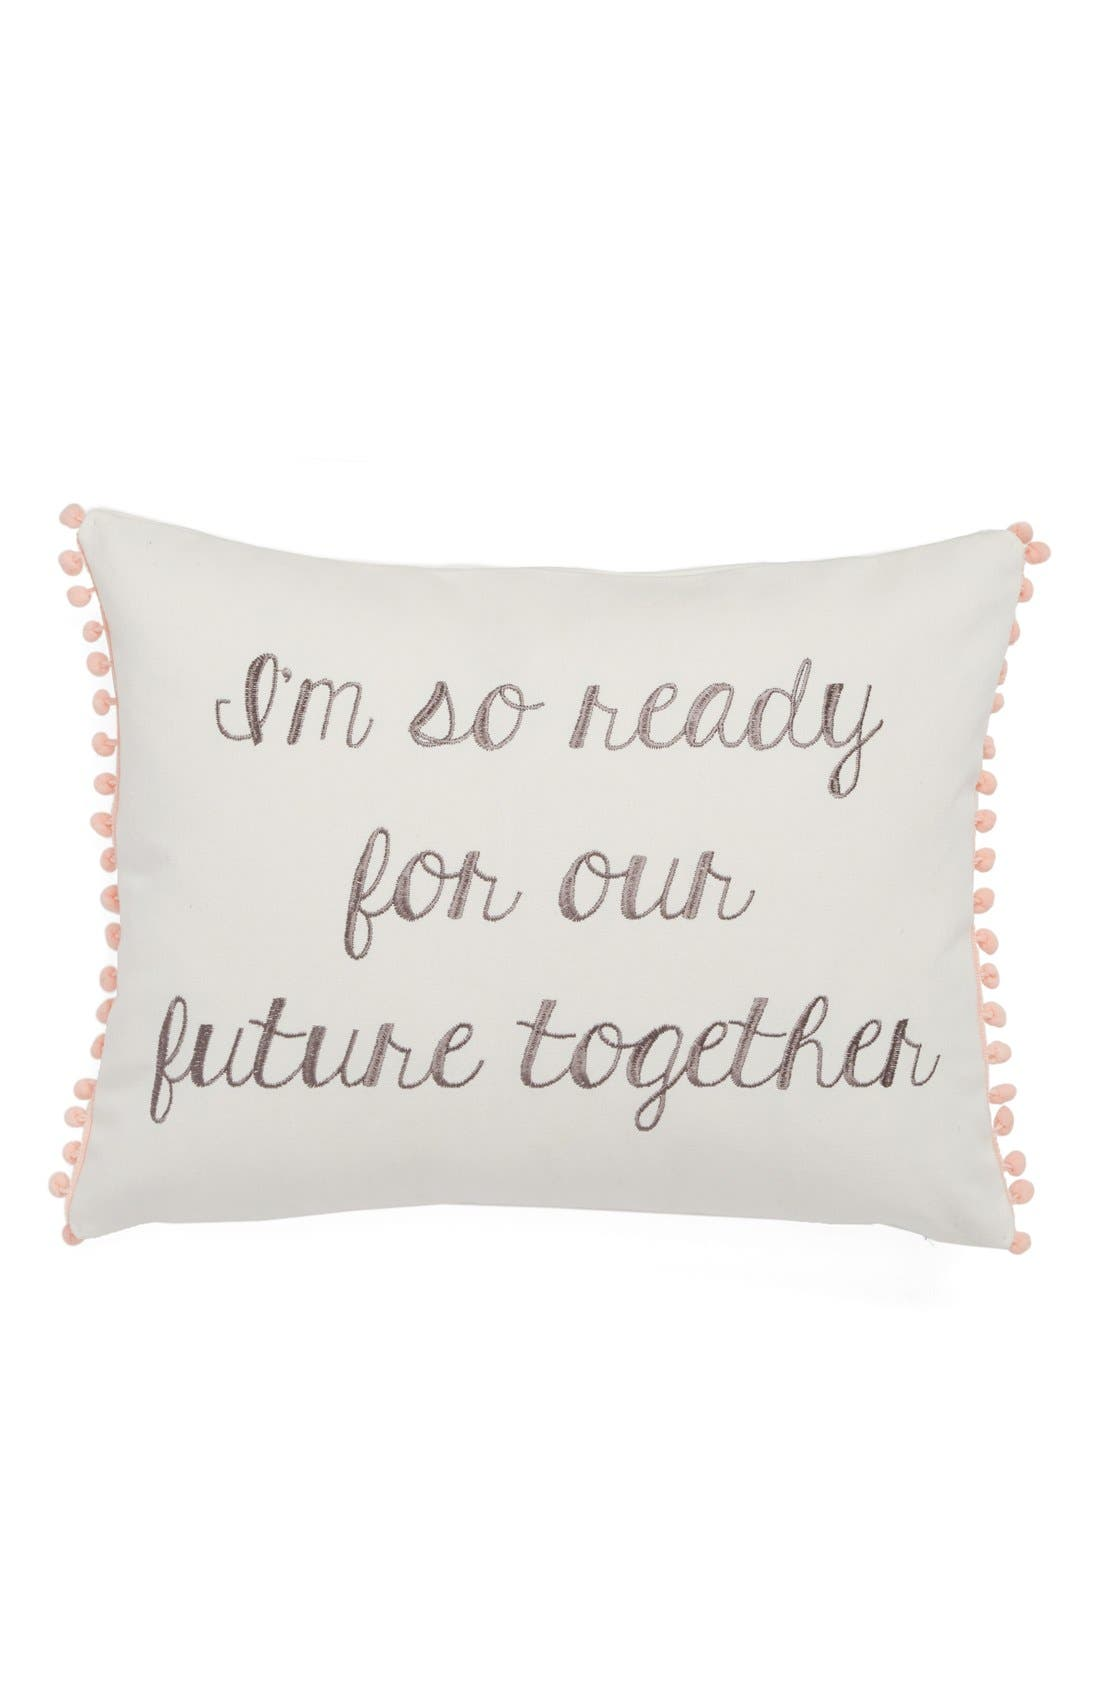 Main Image - Levtex 'Ready for Our Future' Pillow